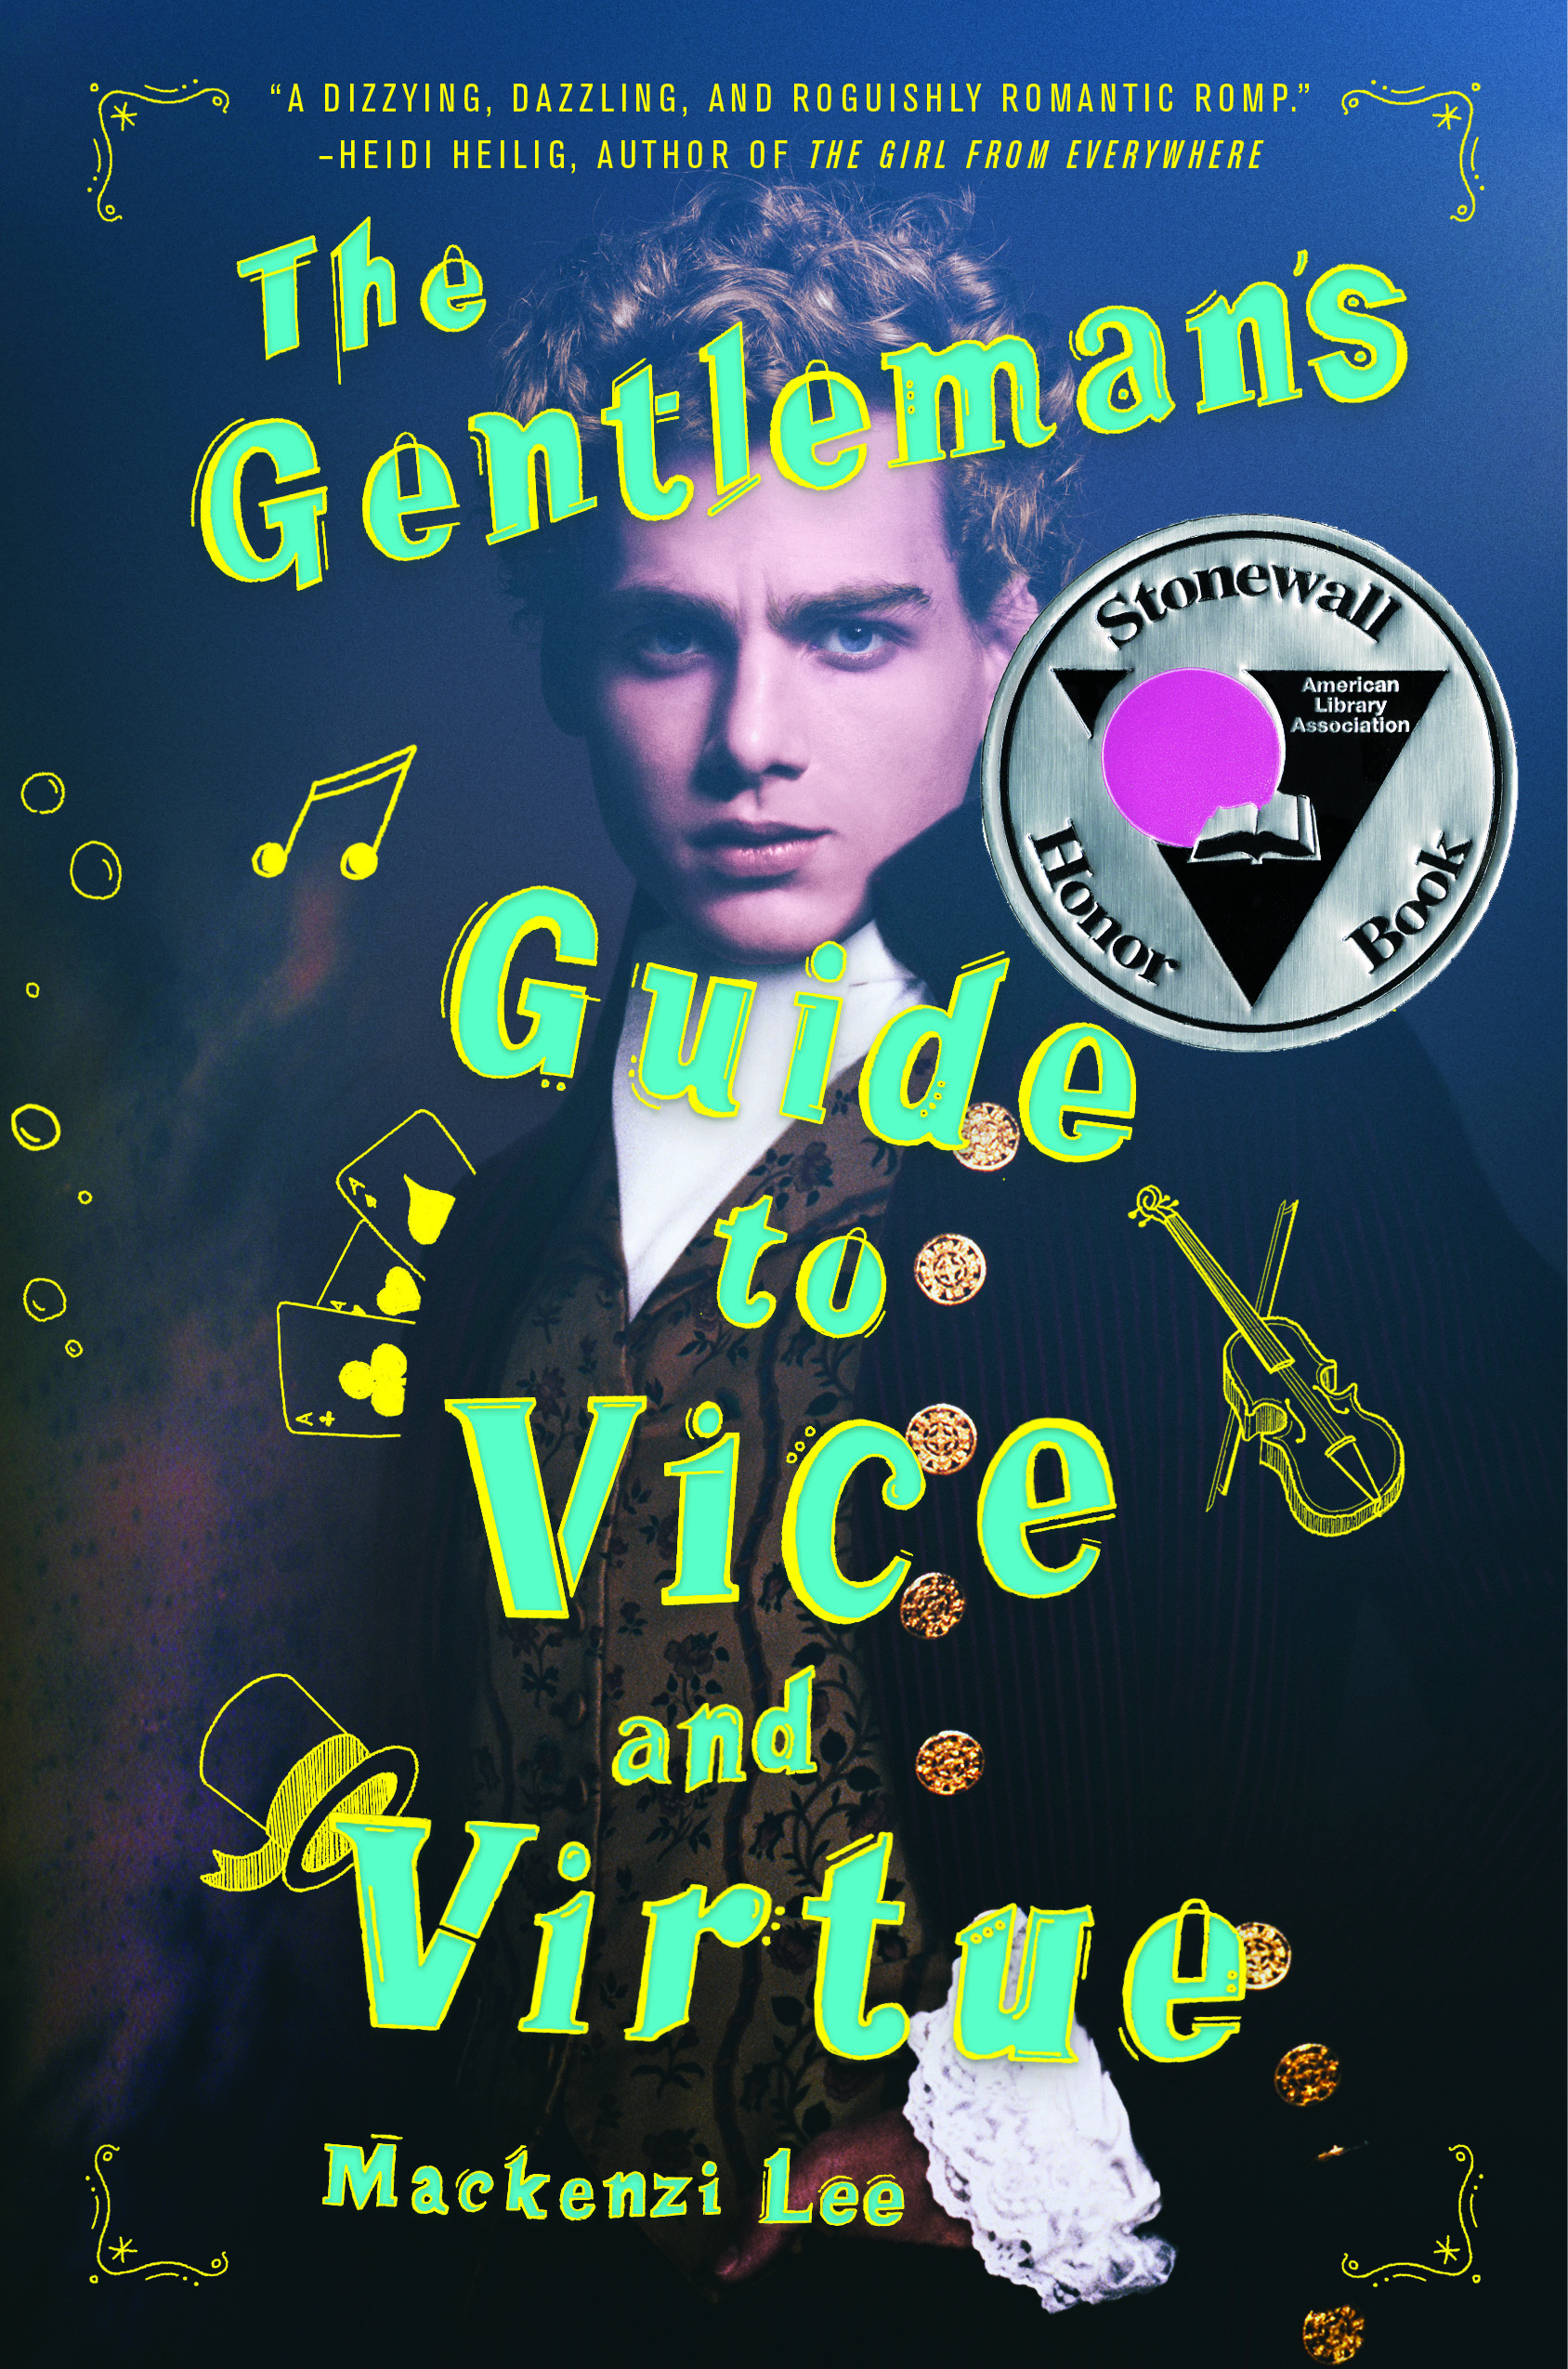 Wicked Libro The Gentleman S Guide To Vice And Virtue Mackenzi Lee Hardcover